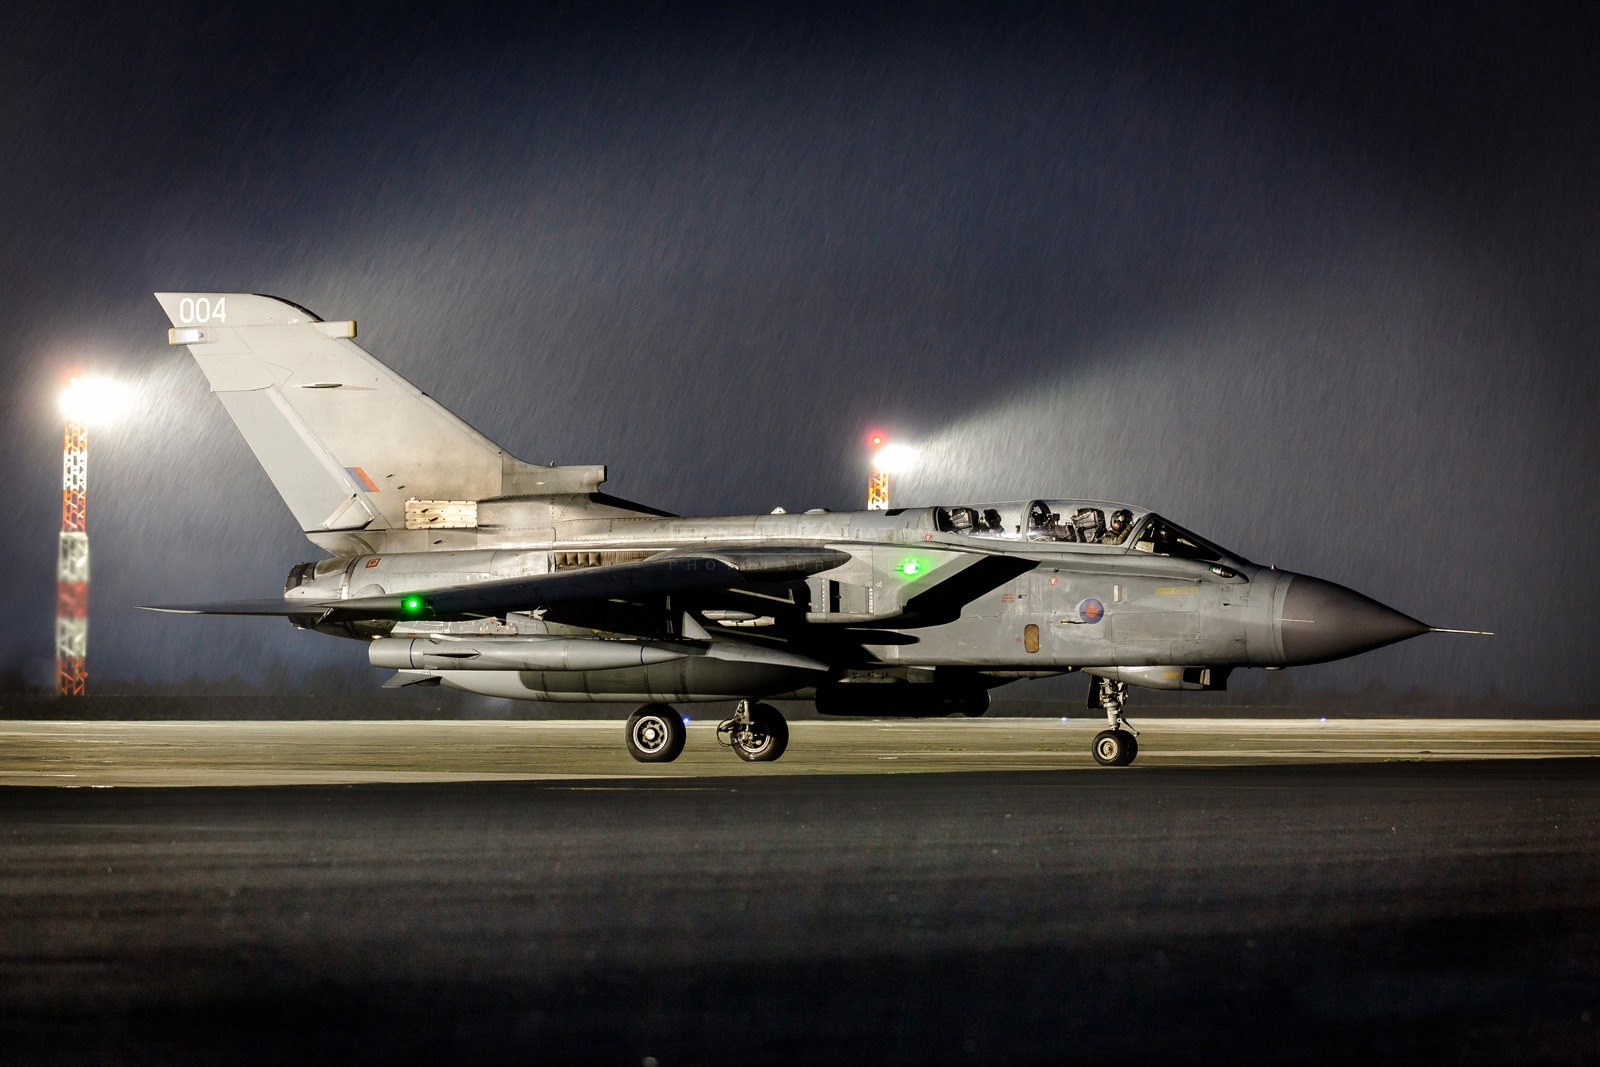 All Weather, Tornado GR.4, '004', ZA370